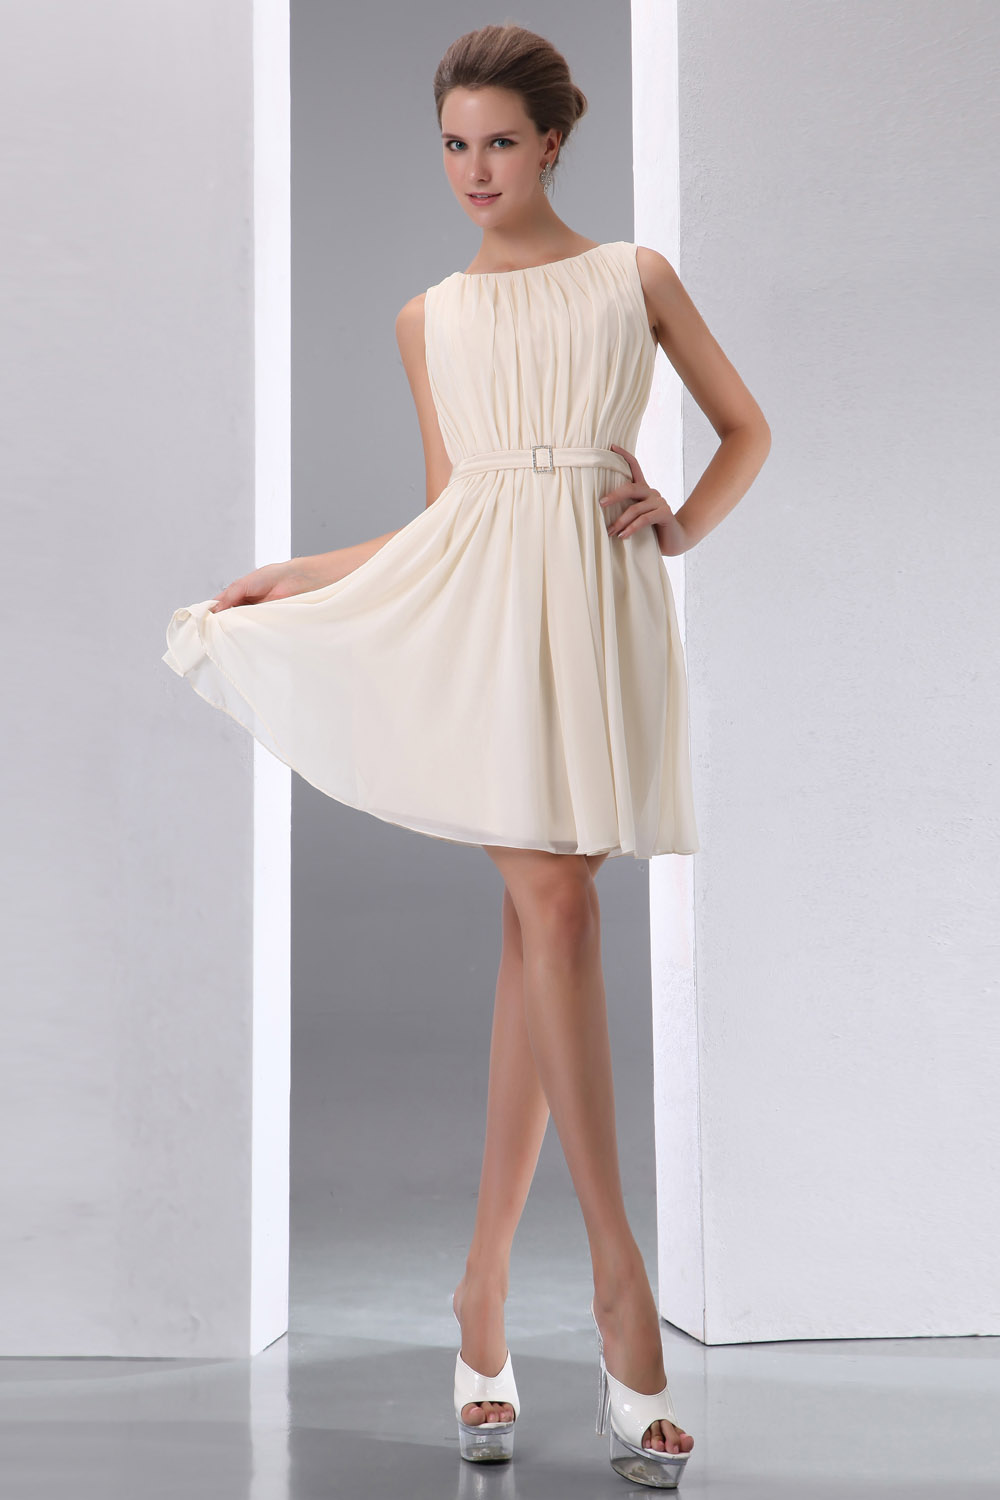 Sheath/Column Sweetheart Short/Mini Satin Graduation Dress